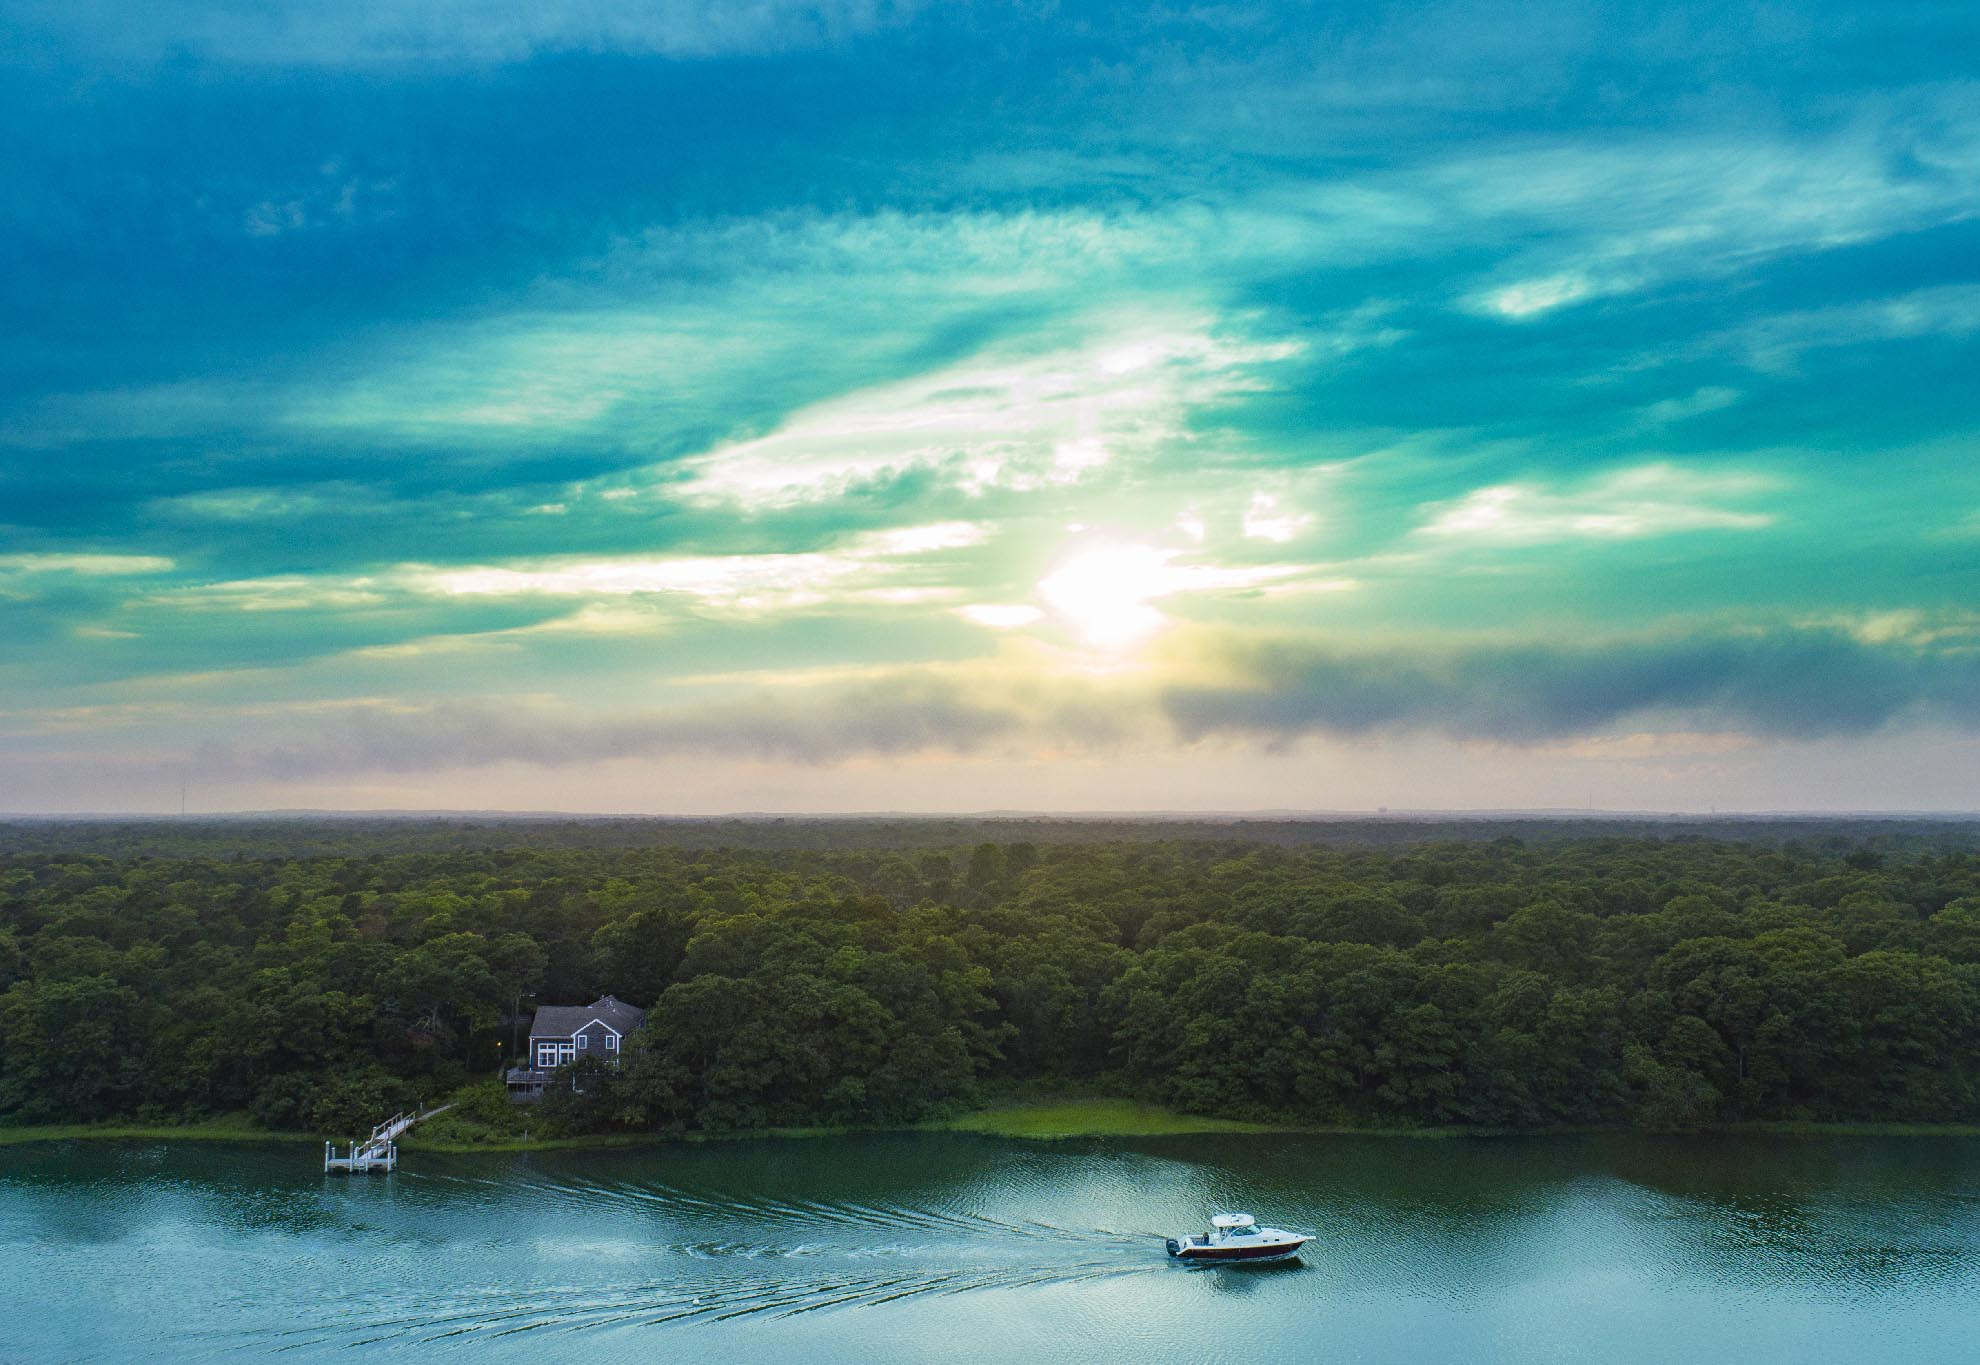 Drone Photograph of Boat going up inlet in East Falmouth at Sunset